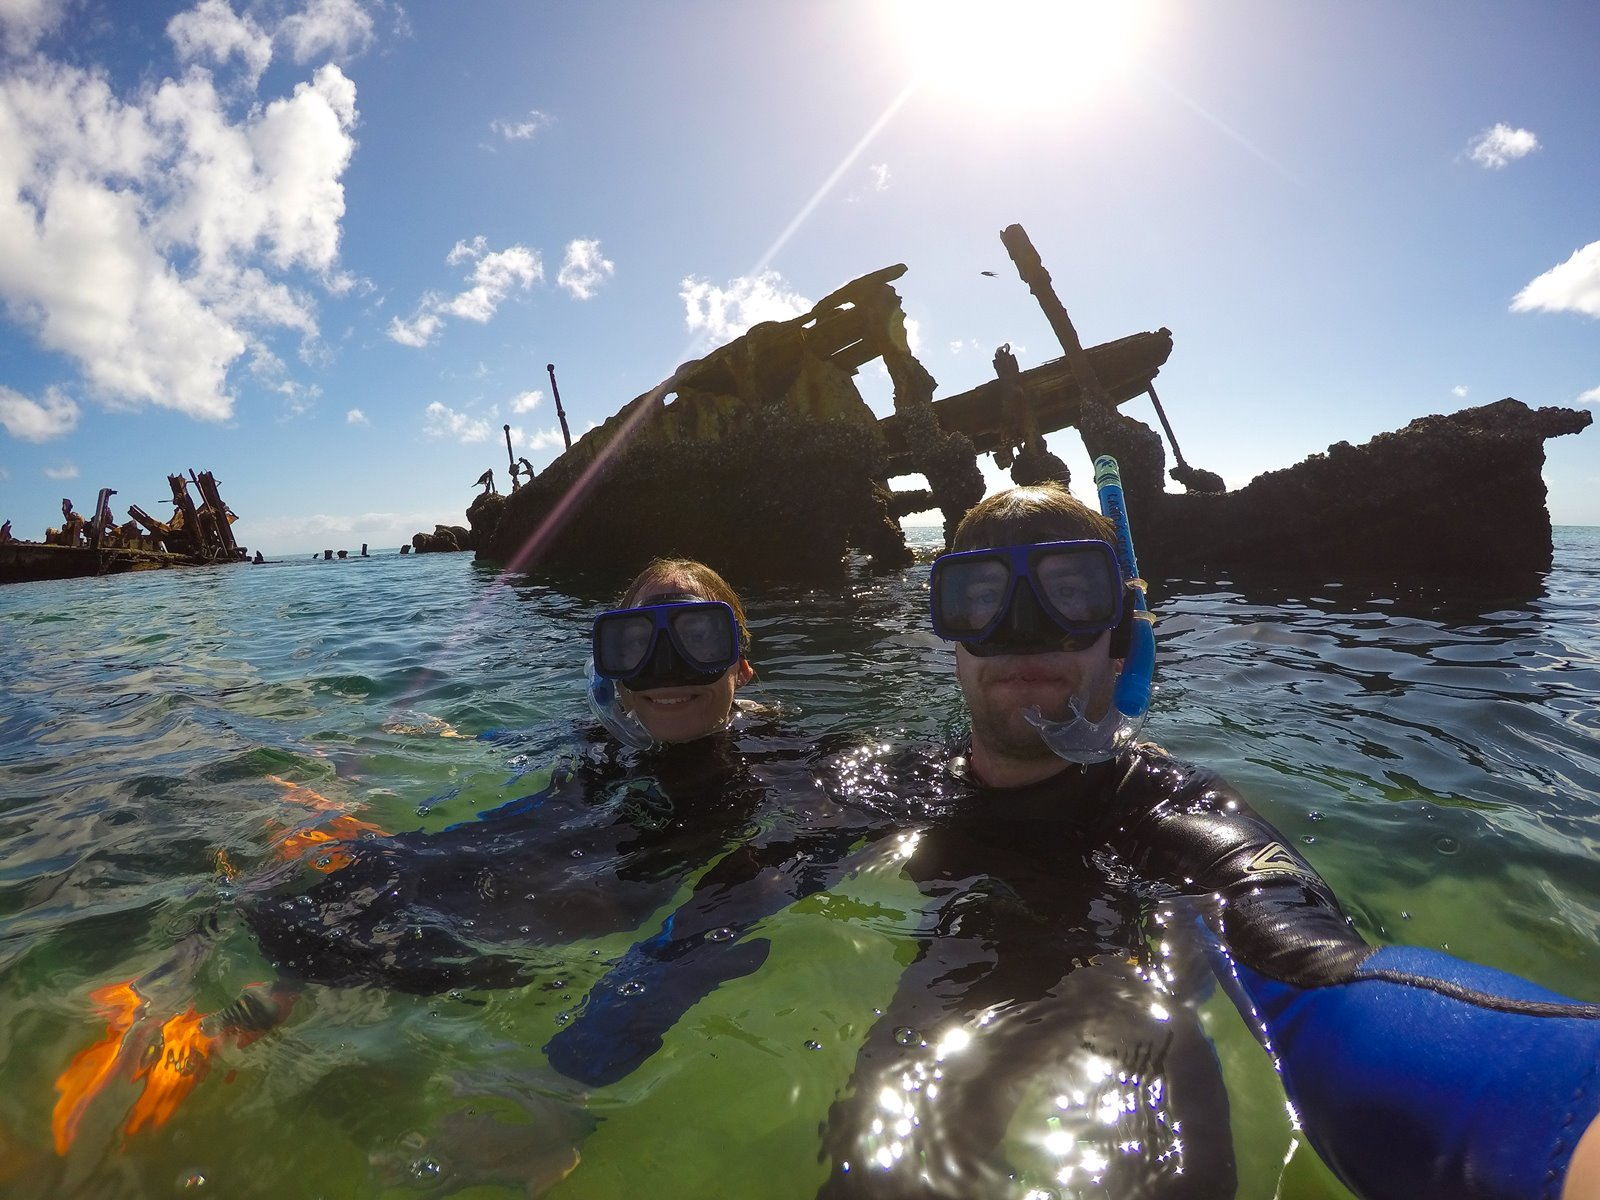 snorkeling the sunken ship wrecks in Tangalooma Island